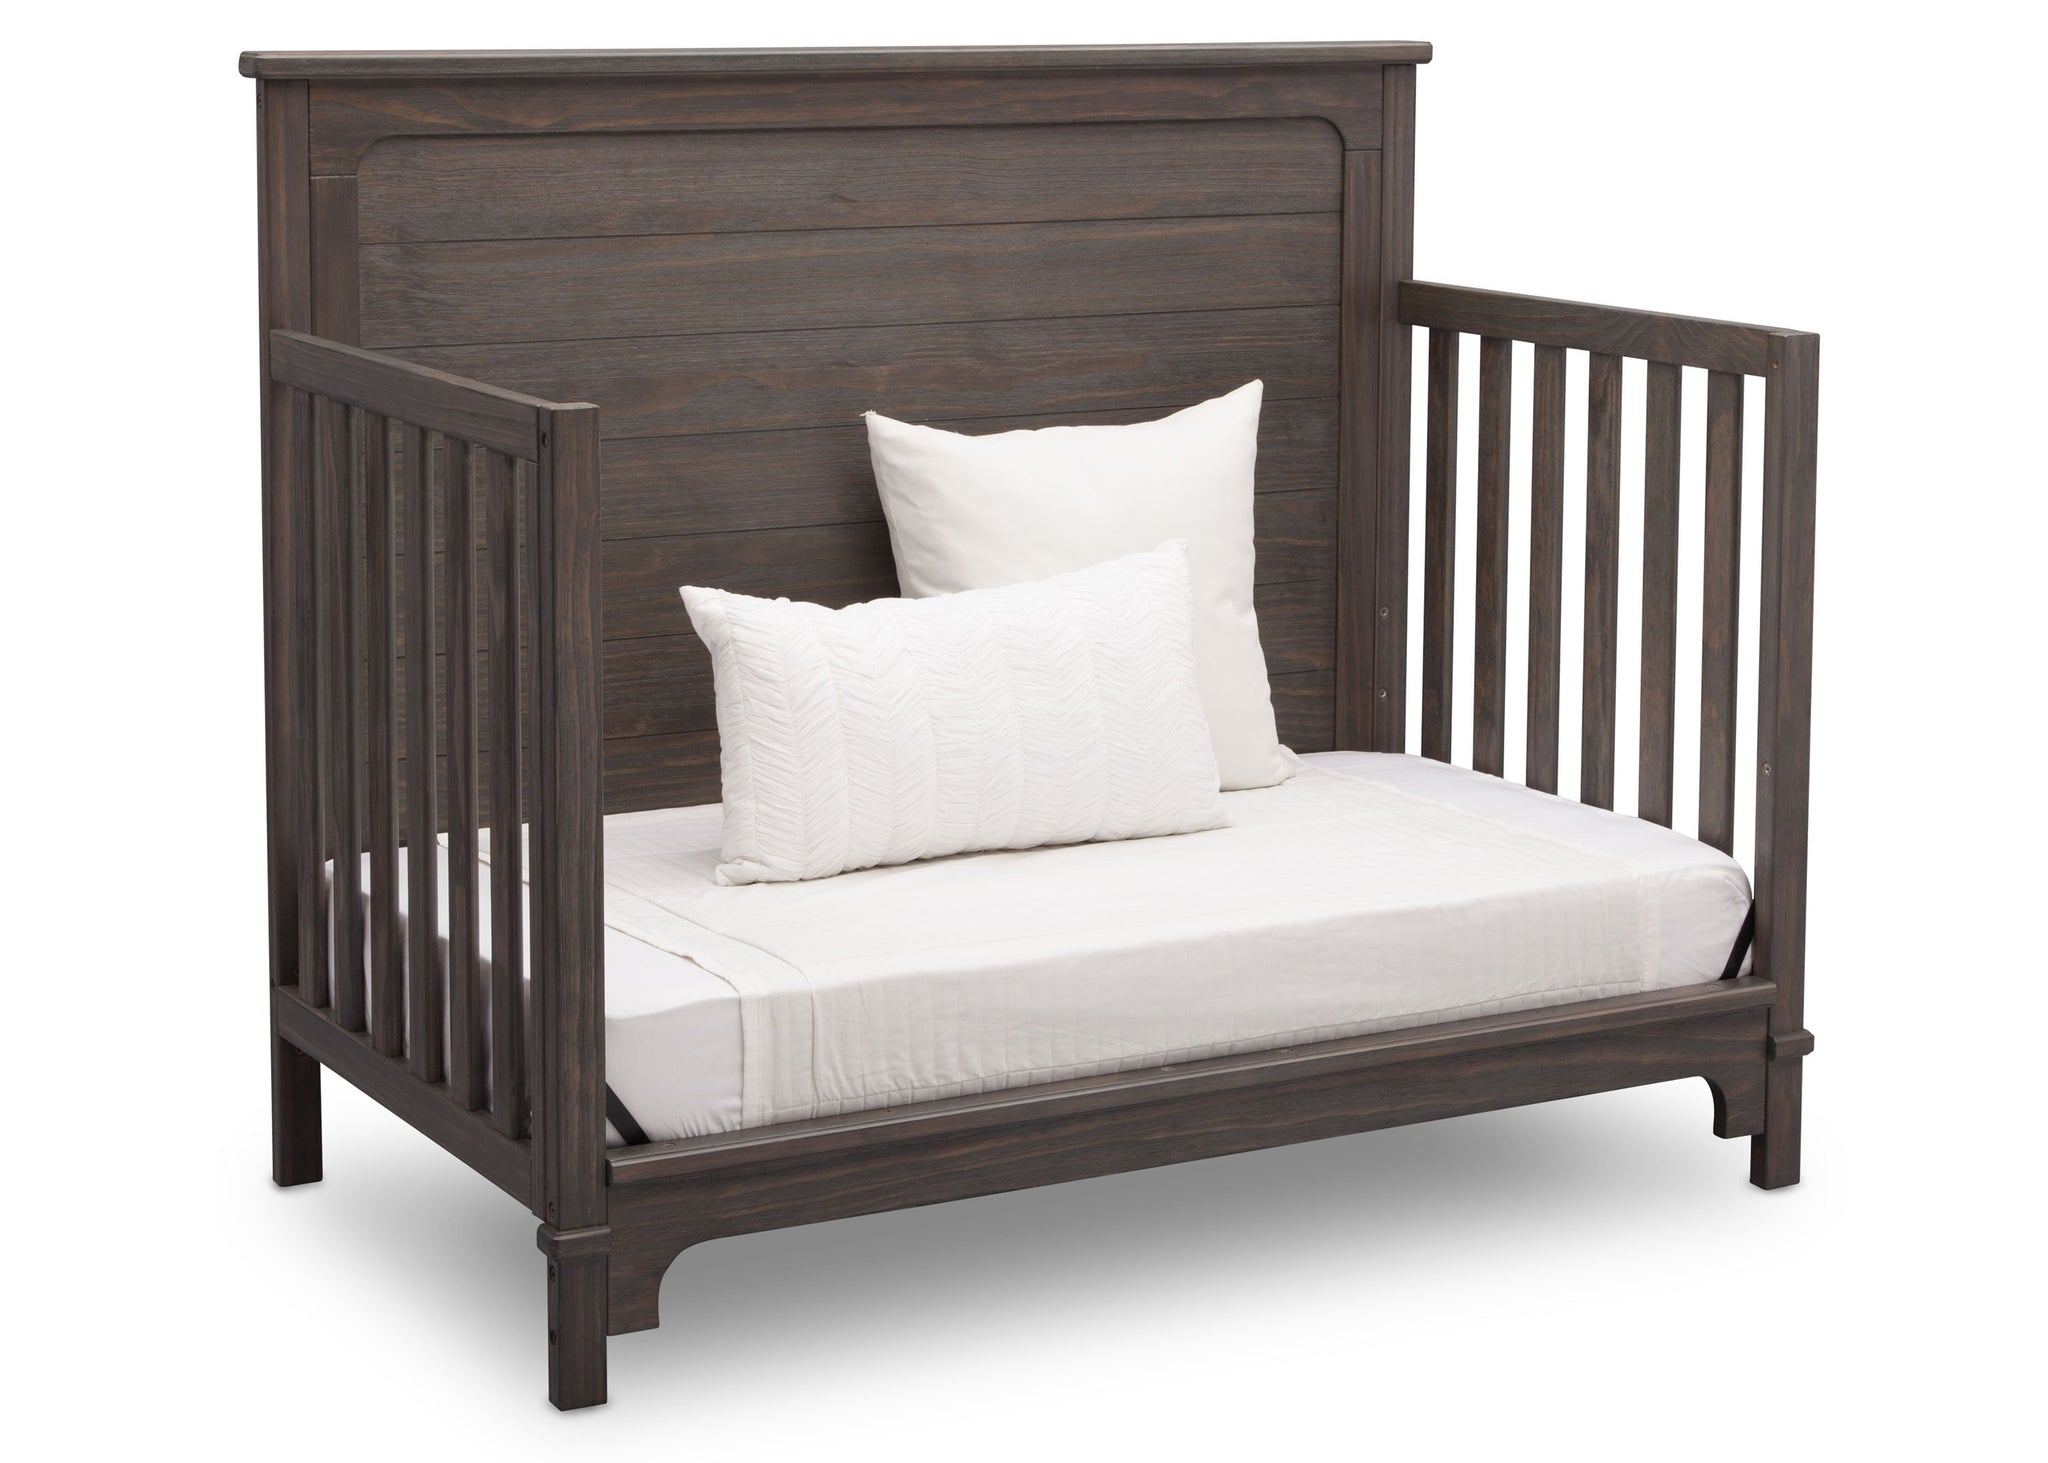 Simmons Kids Rustic Grey (084) Monterey Crib 'N' More, Daybed Conversion a5a